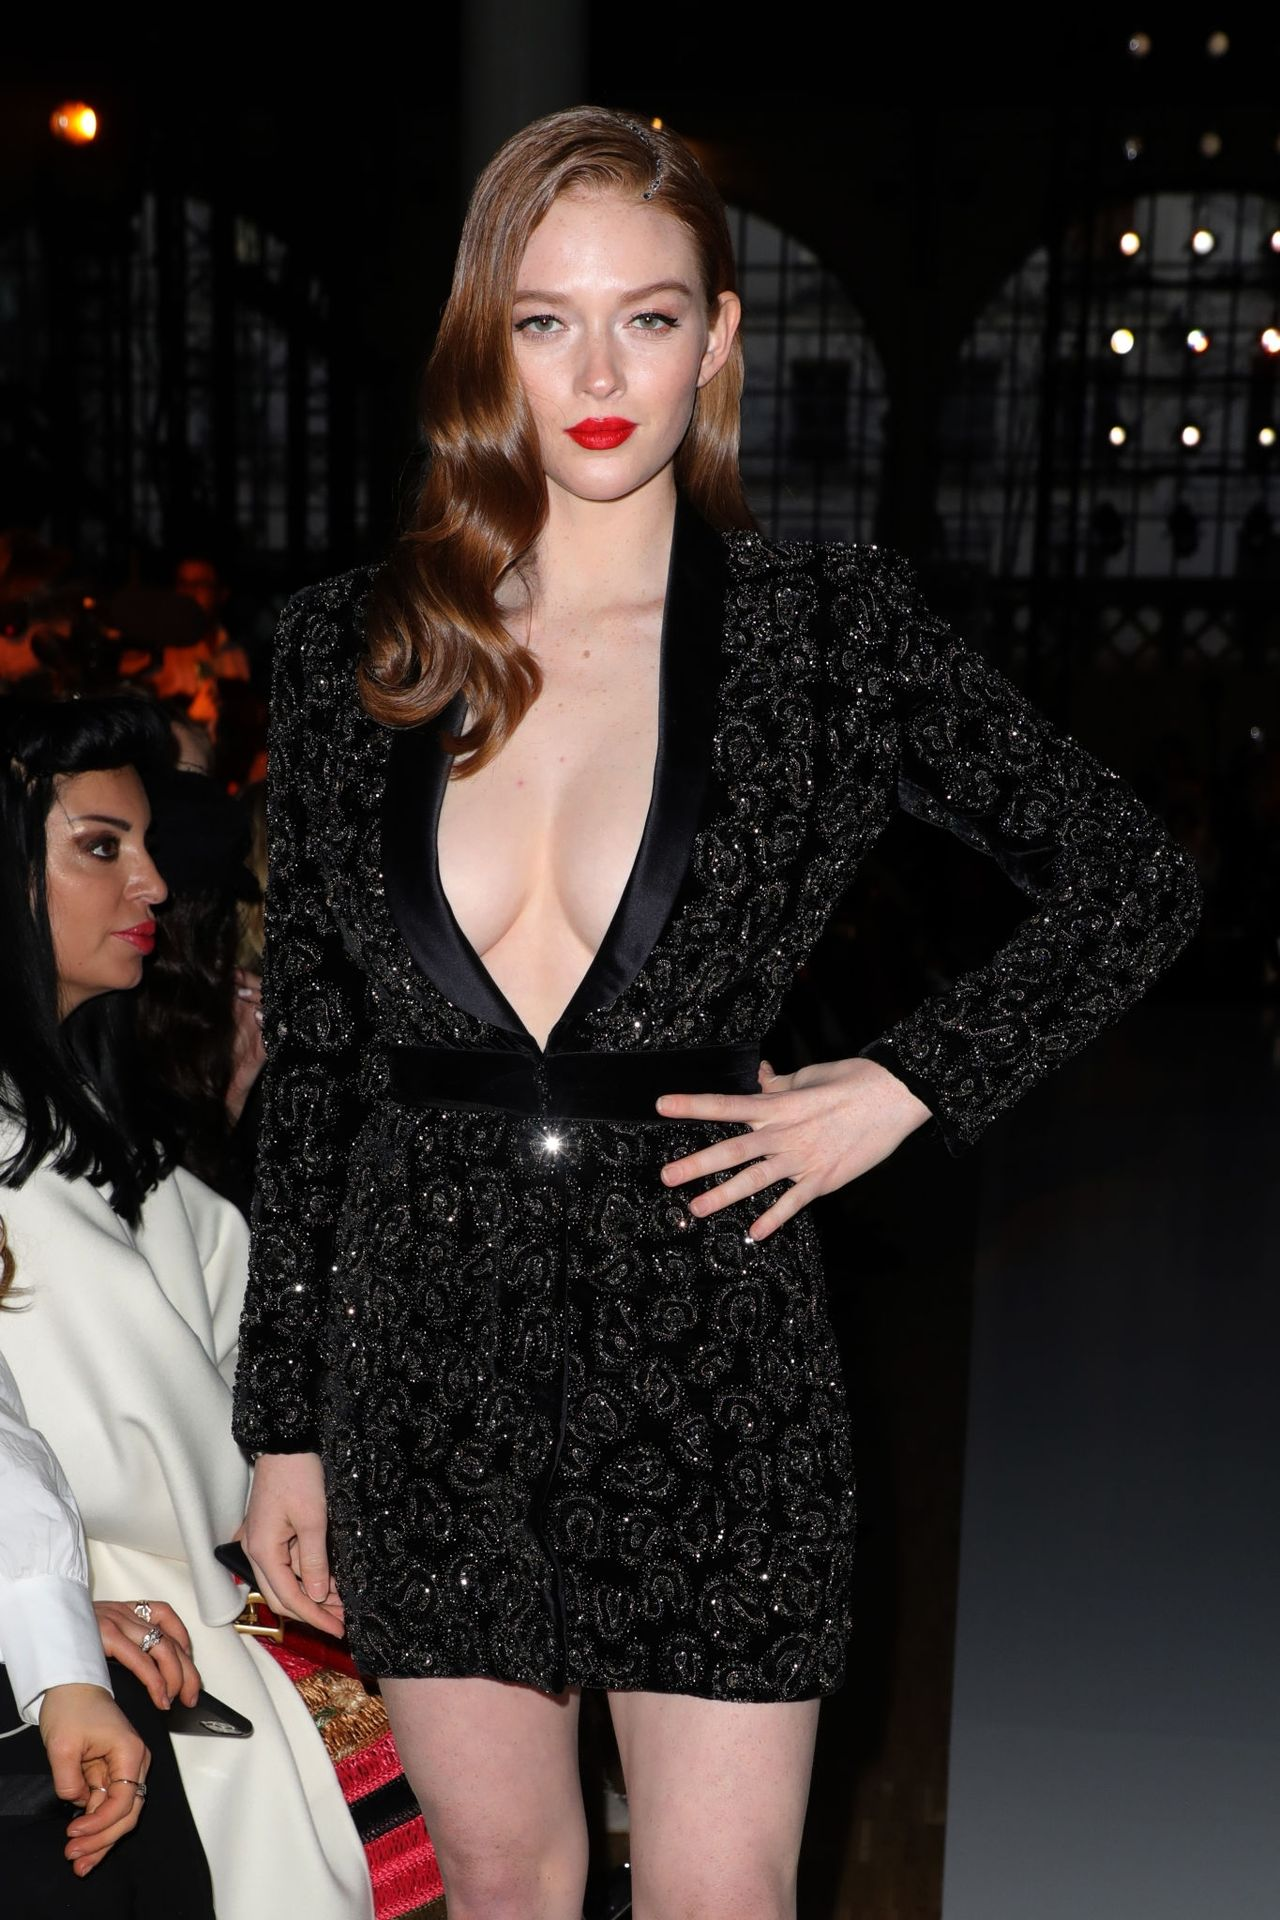 Larsen Thompson Wows With Her Tits At The Fashion Show 0008